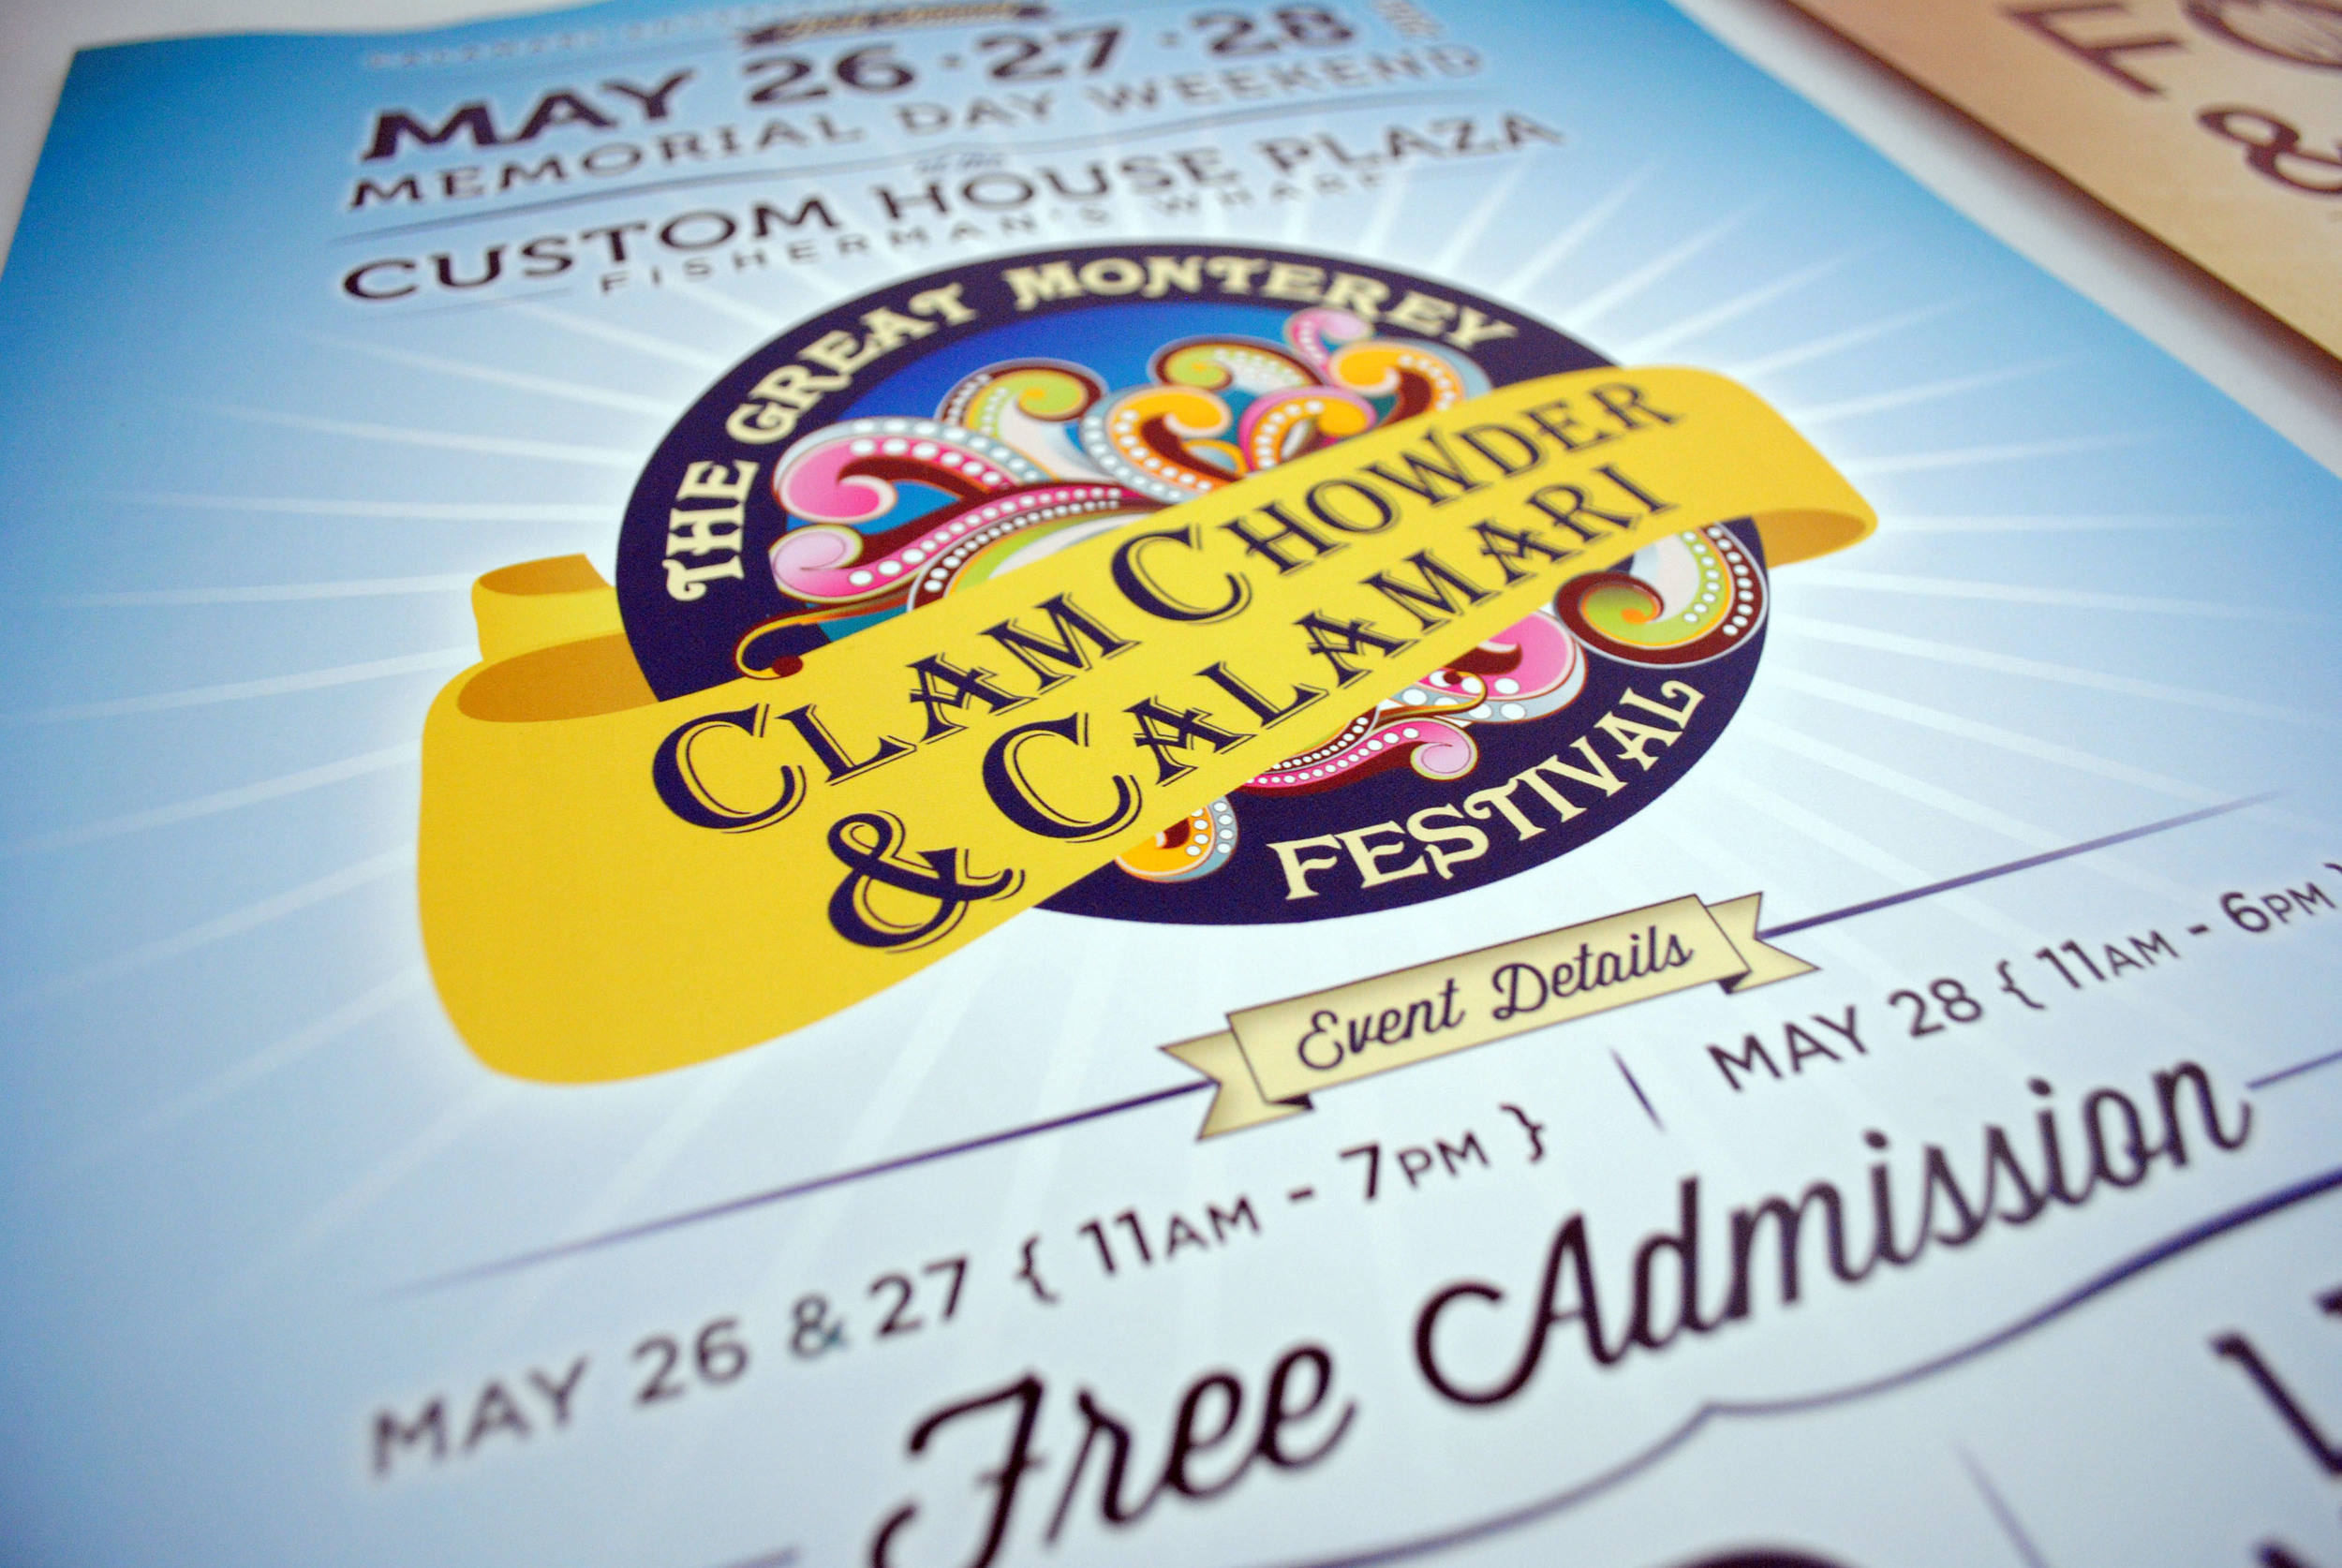 The Great Monterey Clam Chowder and Calamari Festival Poster